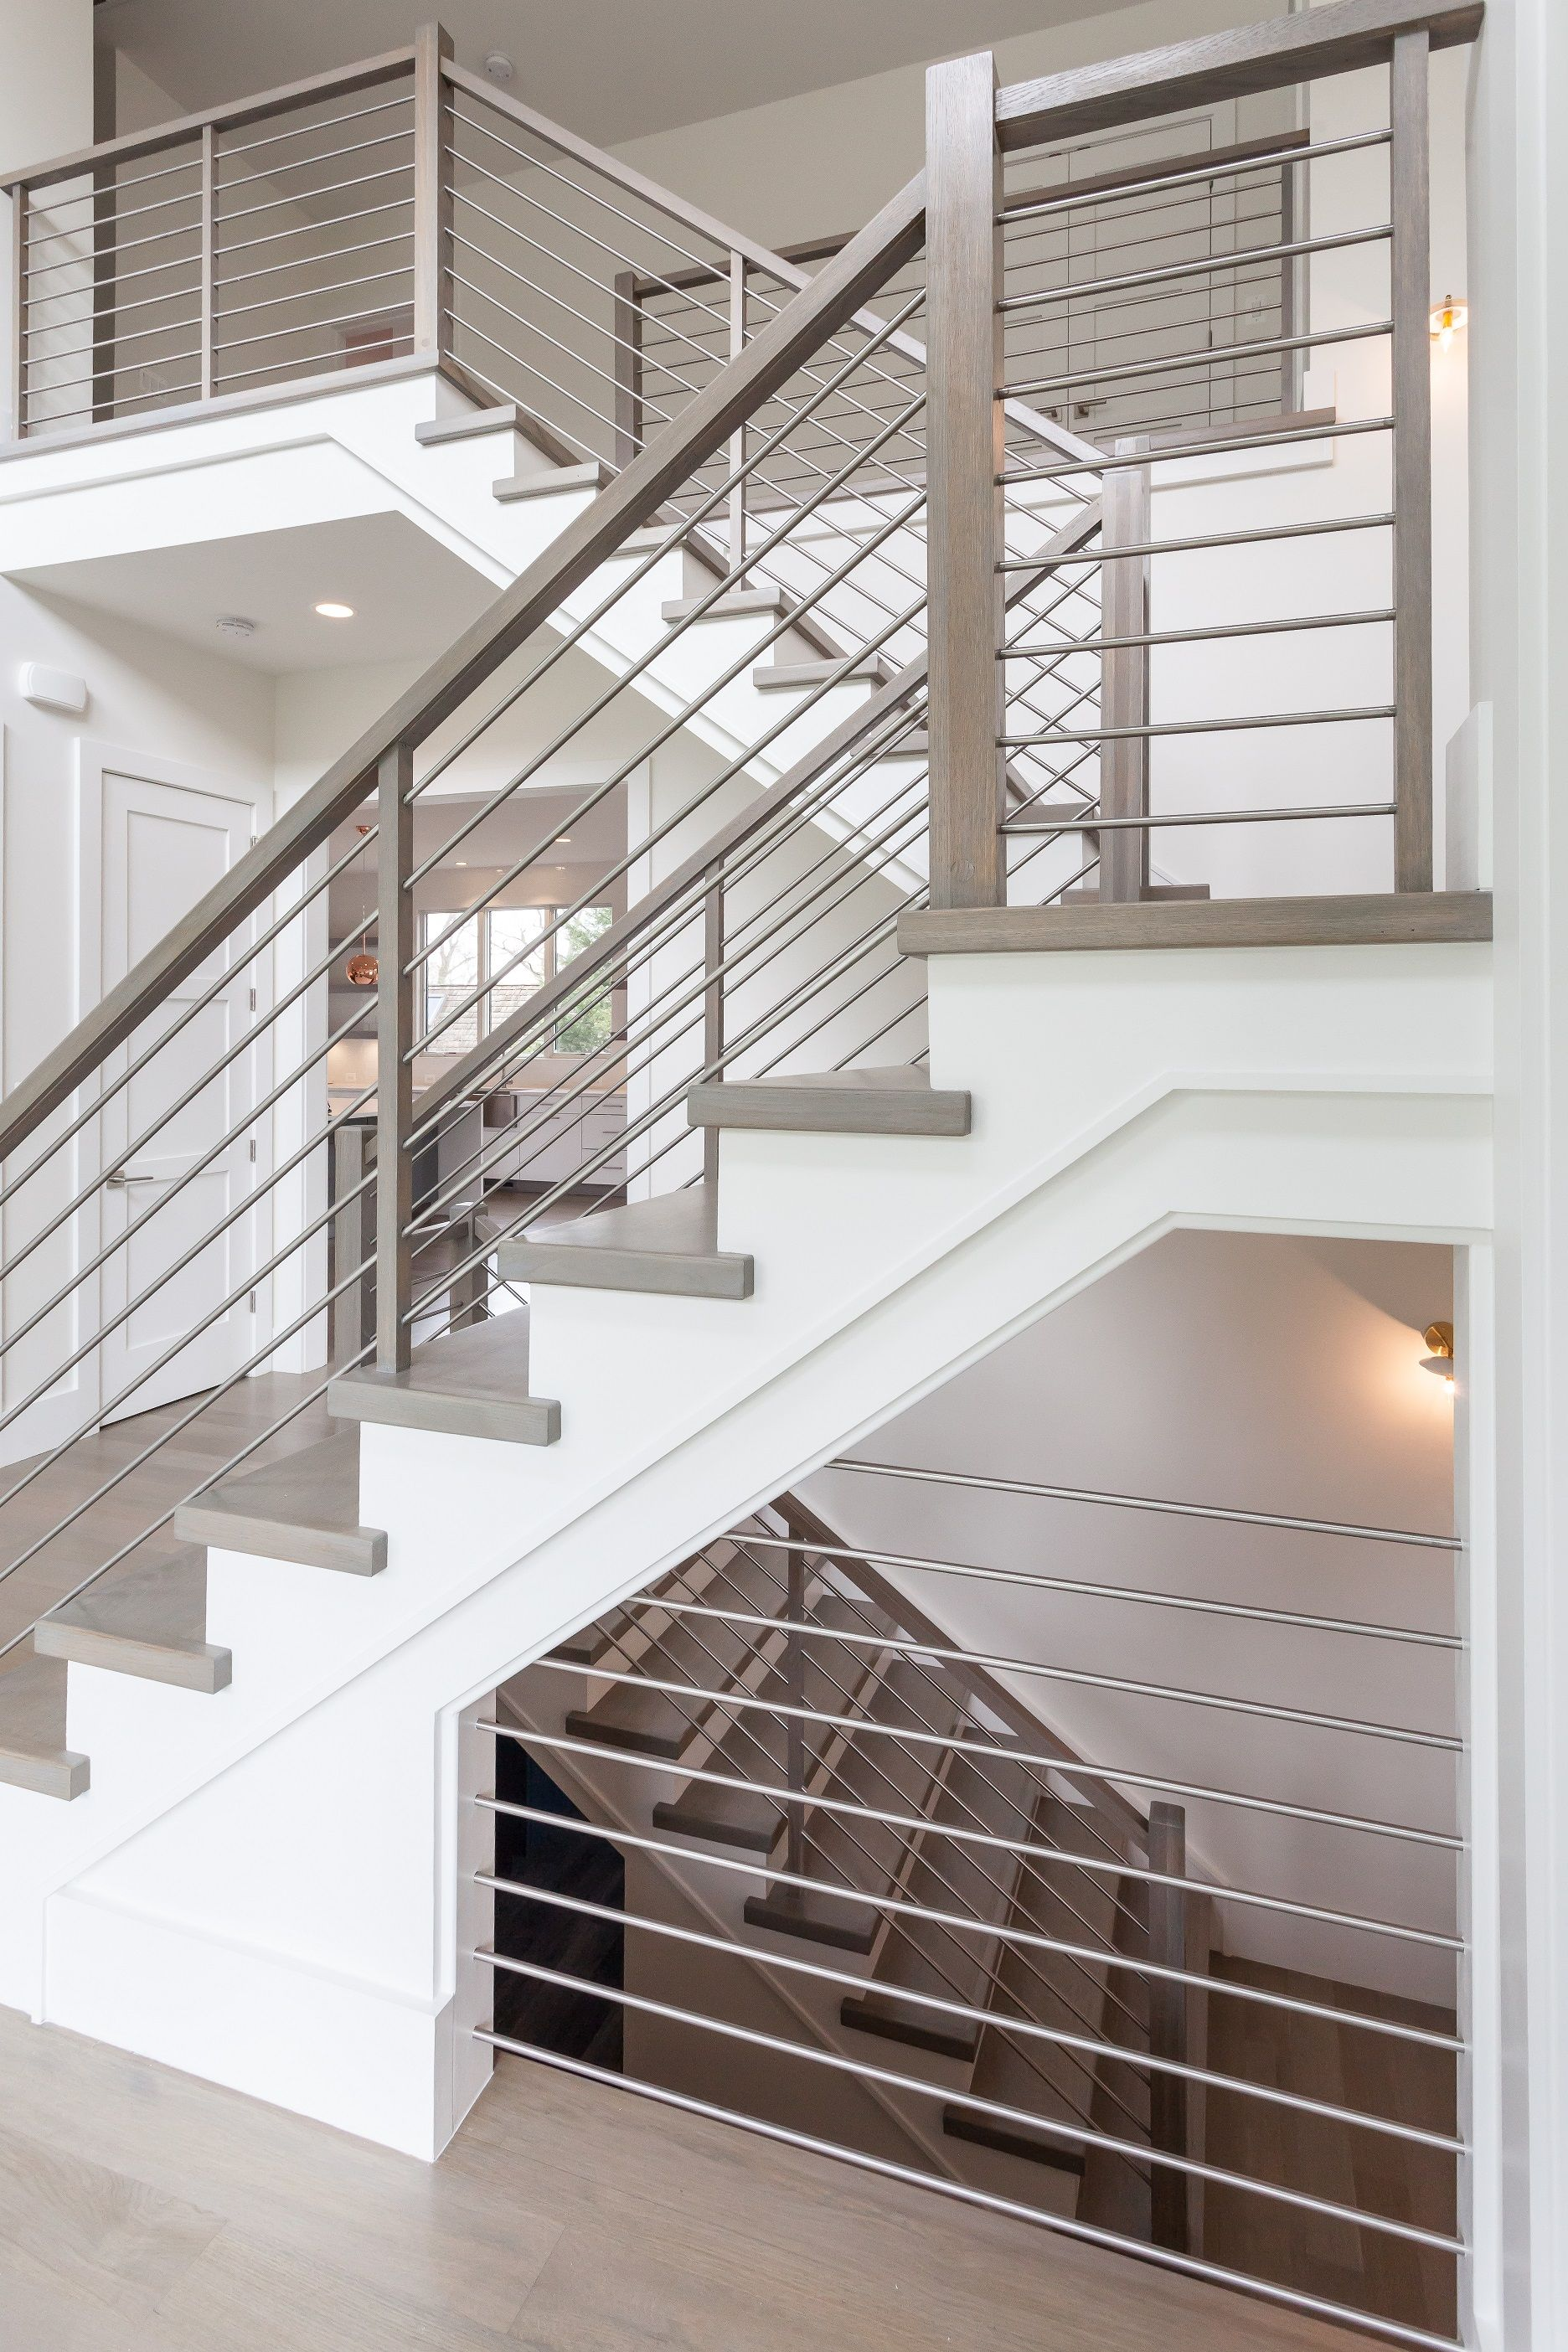 Contemporary Staircase In Entry With Modern Horizontal Stainless Steel Railing In Custom H Staircase Design Modern Stainless Steel Stair Railing Modern Railing